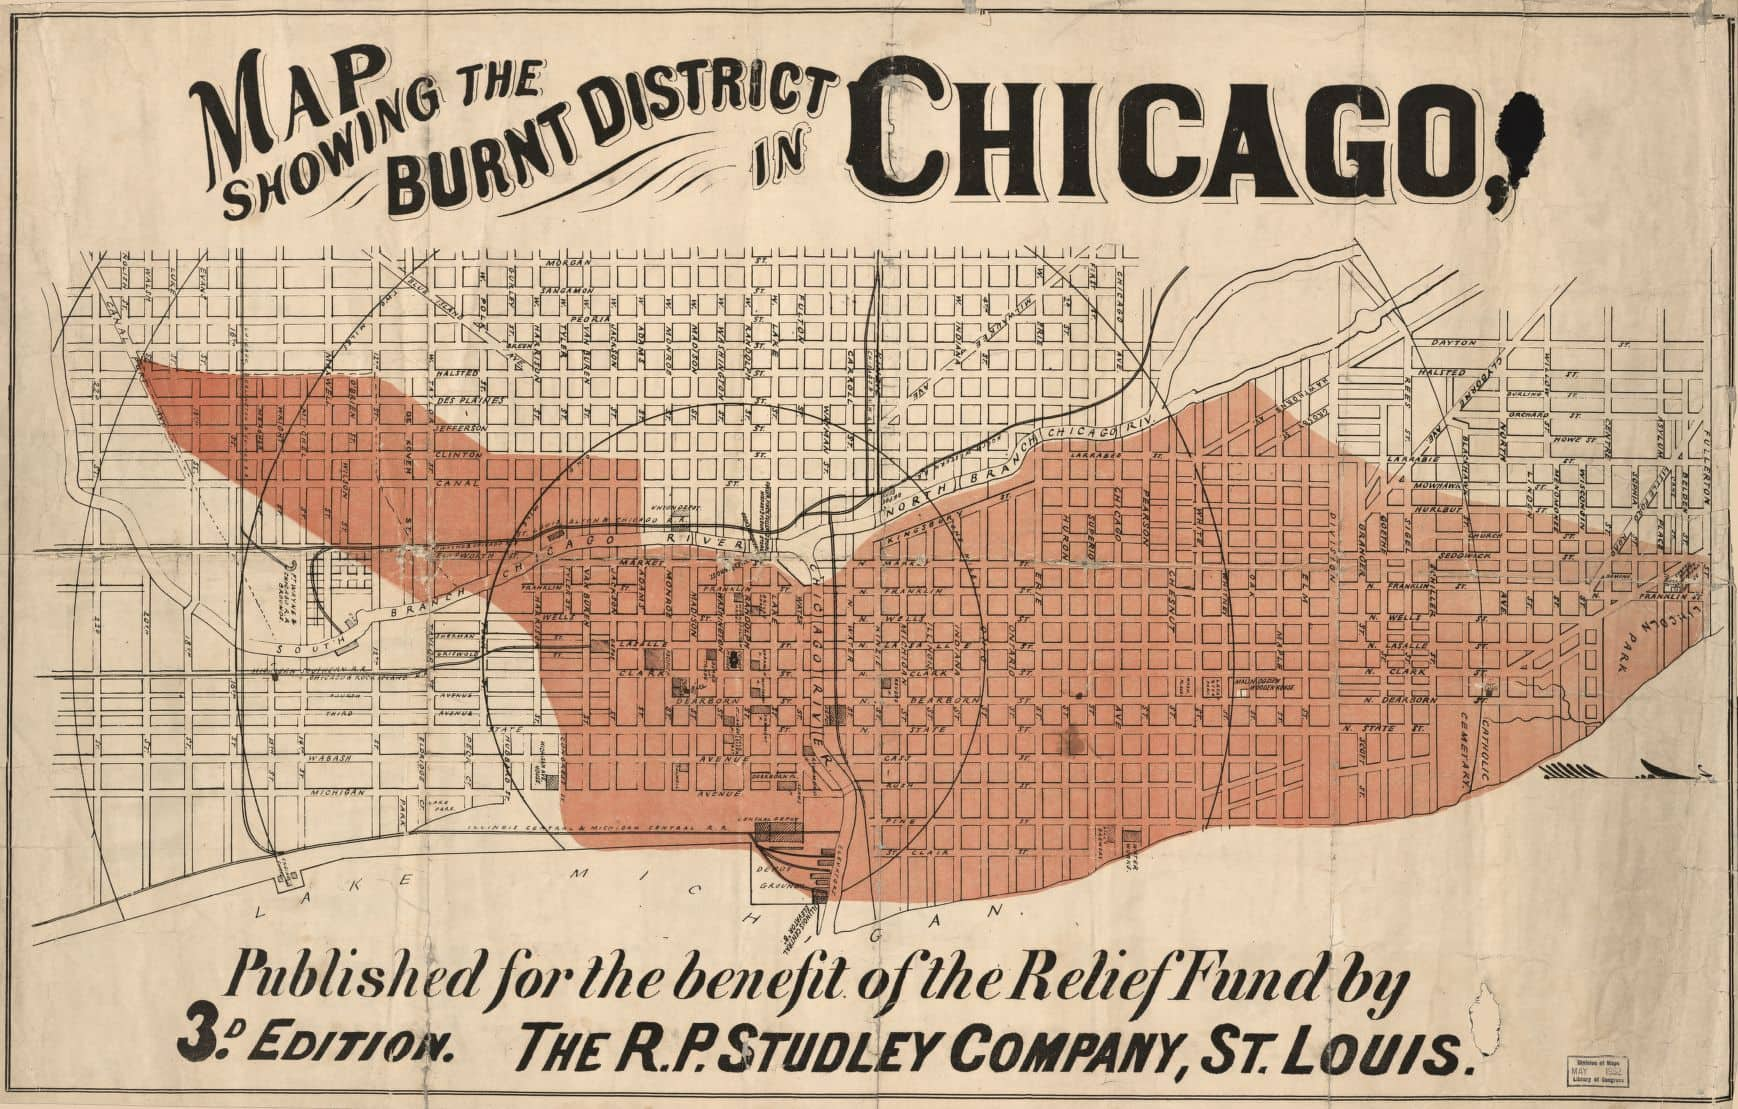 Vintage illustration showing the burnt district from the Chicago Fire of 1871